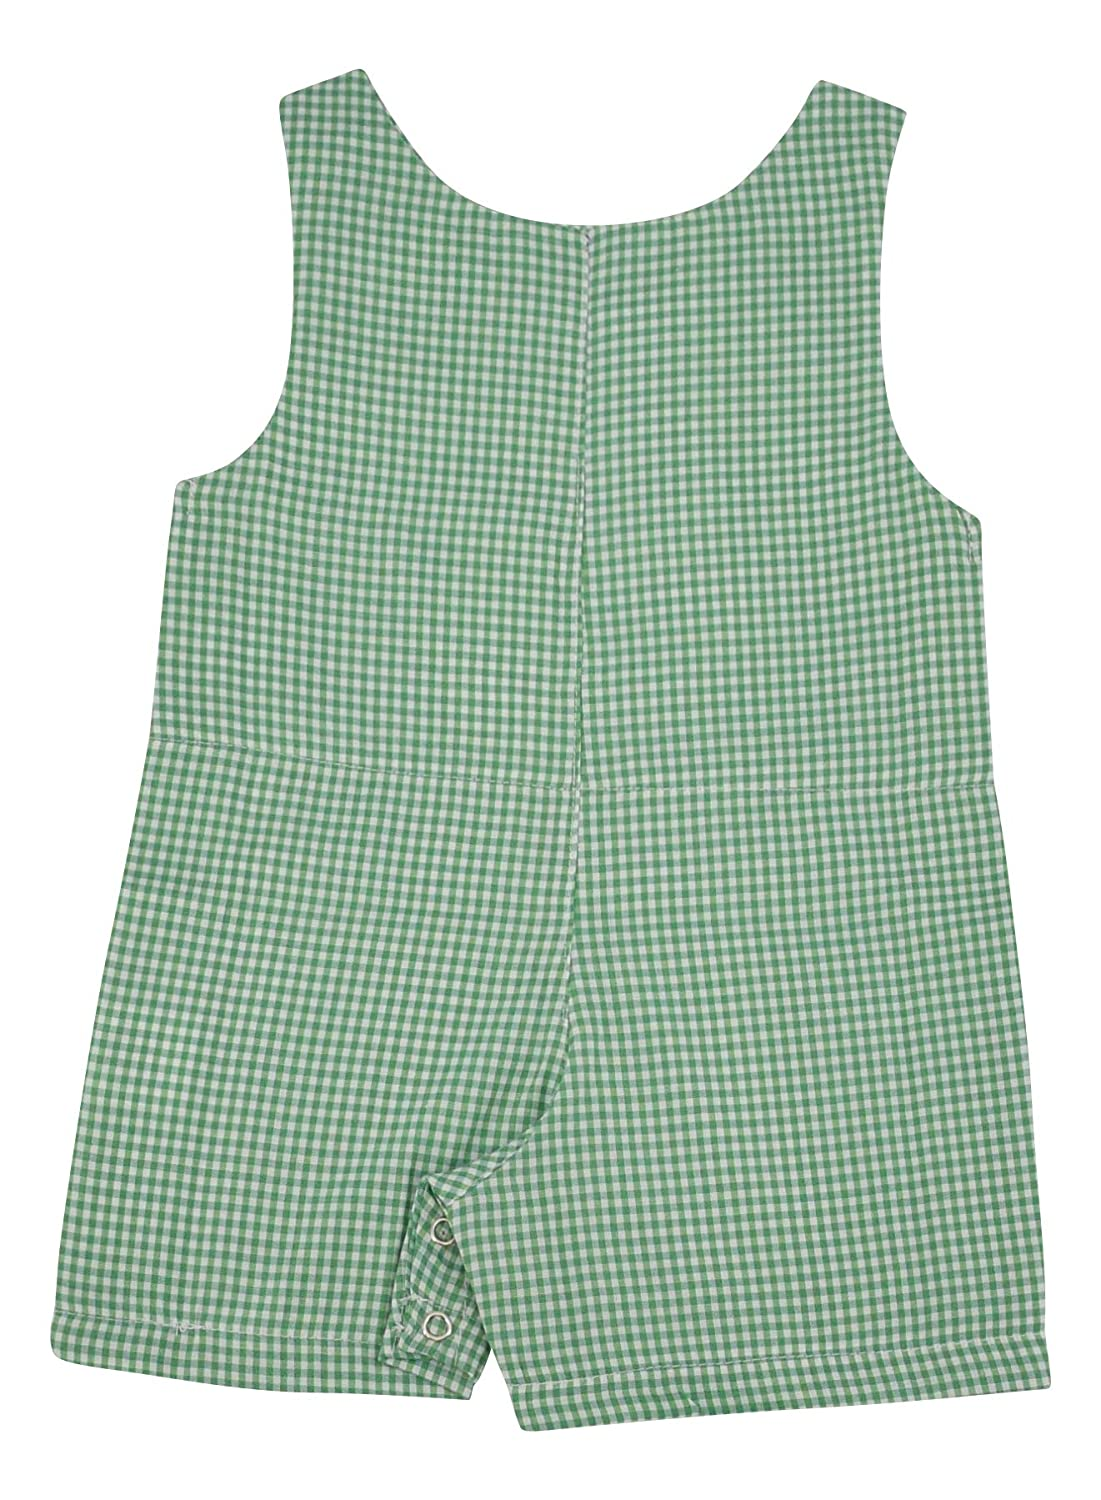 Unique Baby Boys 1st St Pats Chick Jon Jon Outfit